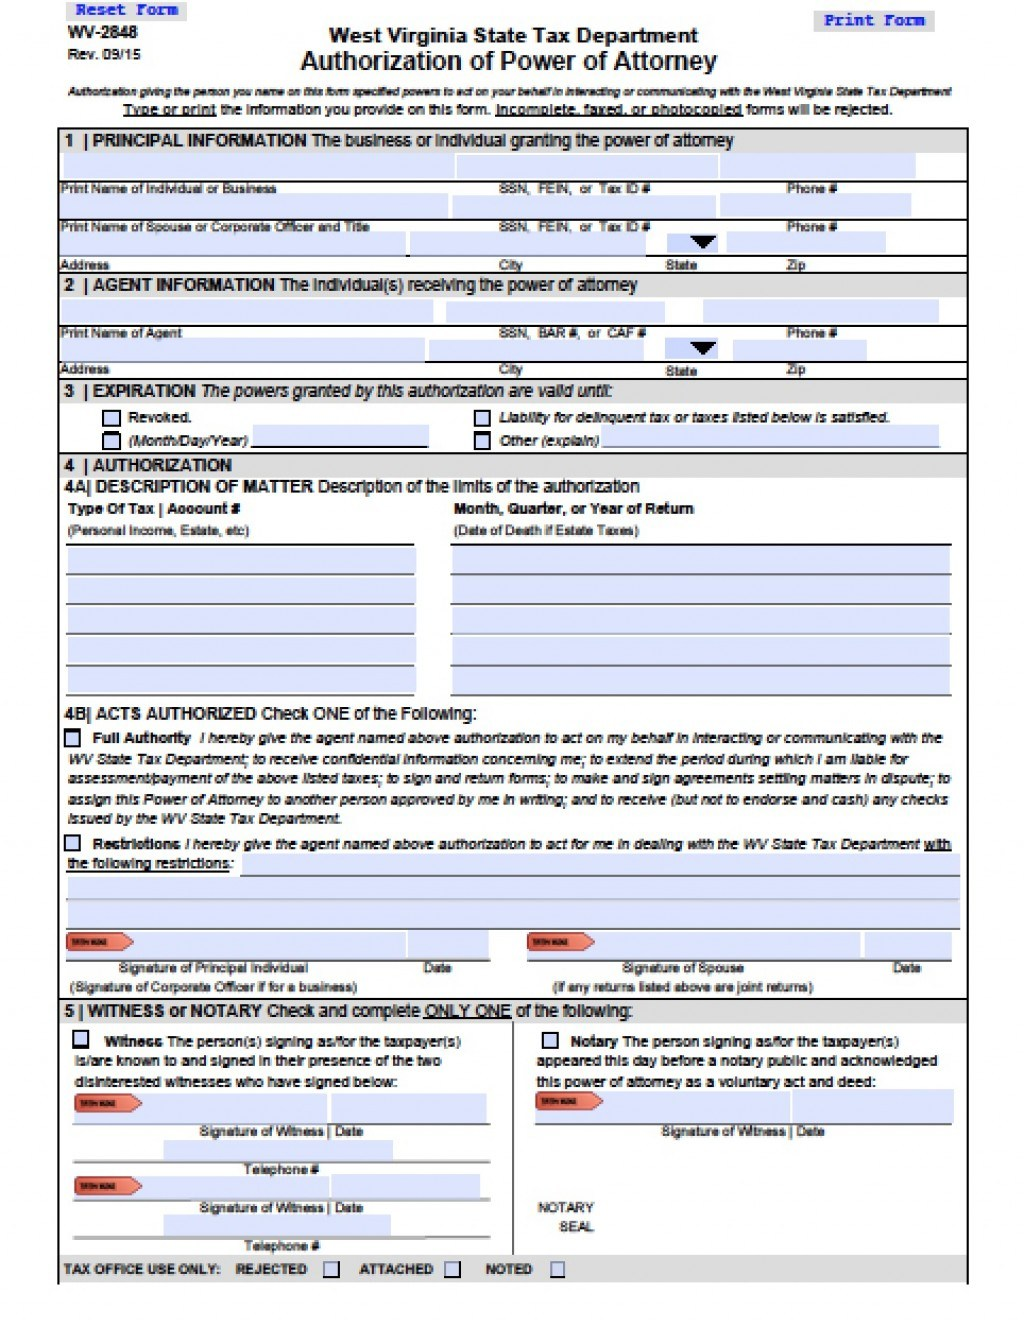 West Virginia State Tax Department Forms